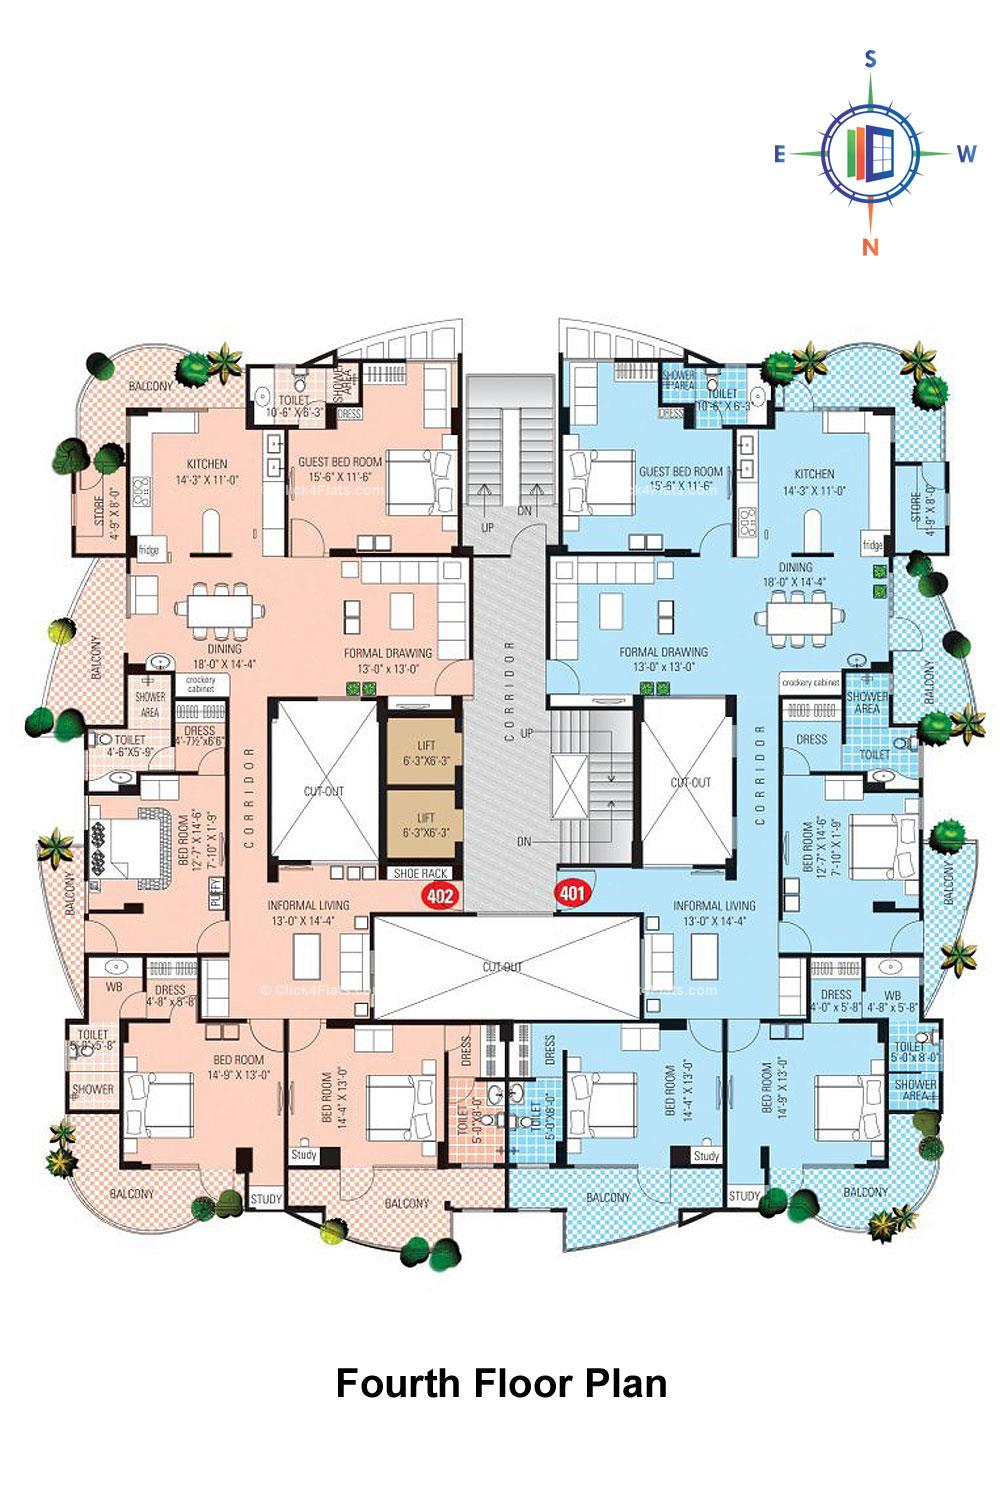 SDC Karan Heights Fourth Floor Plan